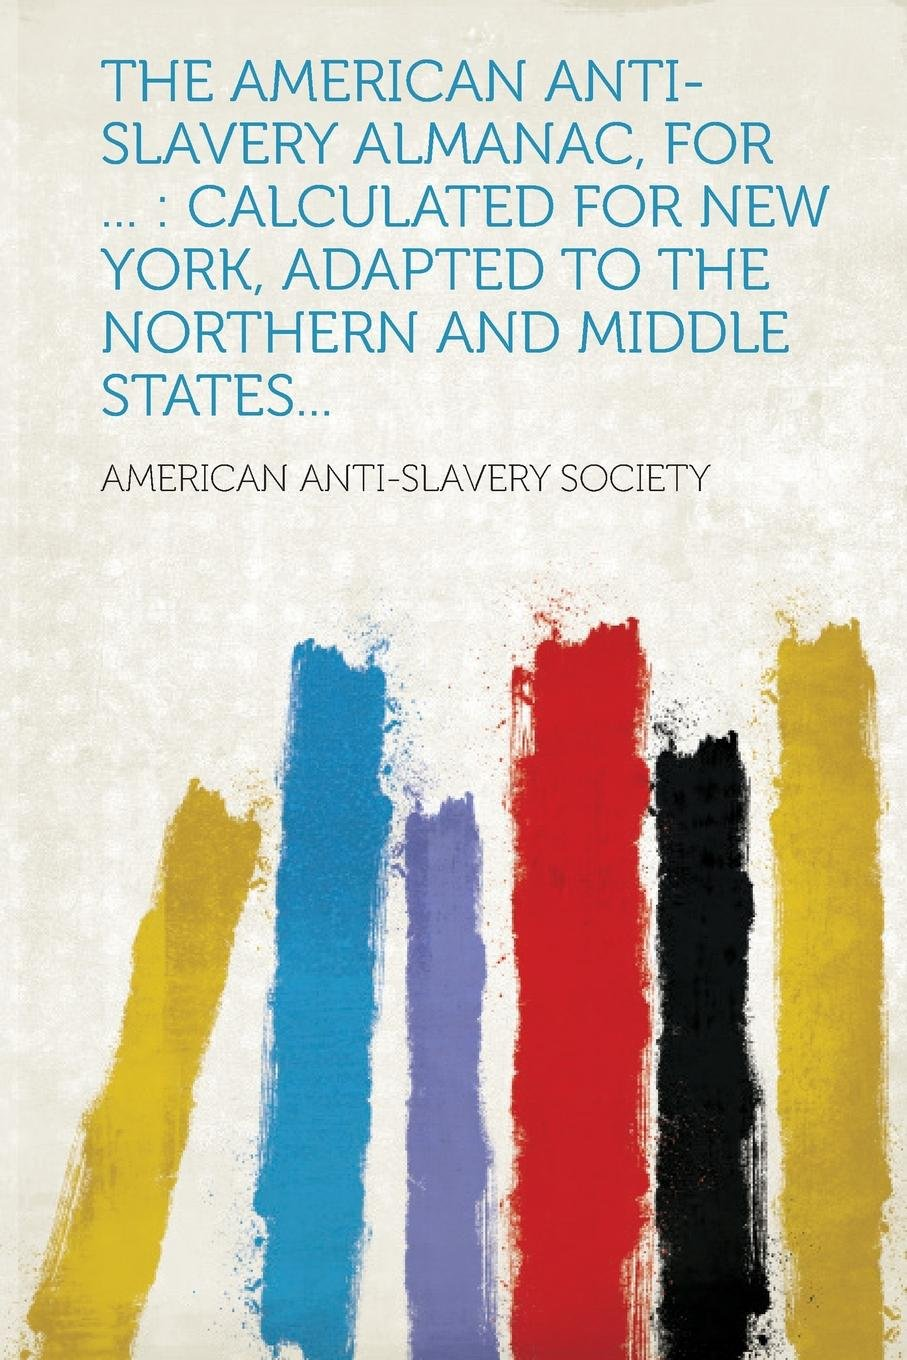 The American Anti-Slavery Almanac, for ...: Calculated for New York, Adapted to the Northern and Middle States... ebook